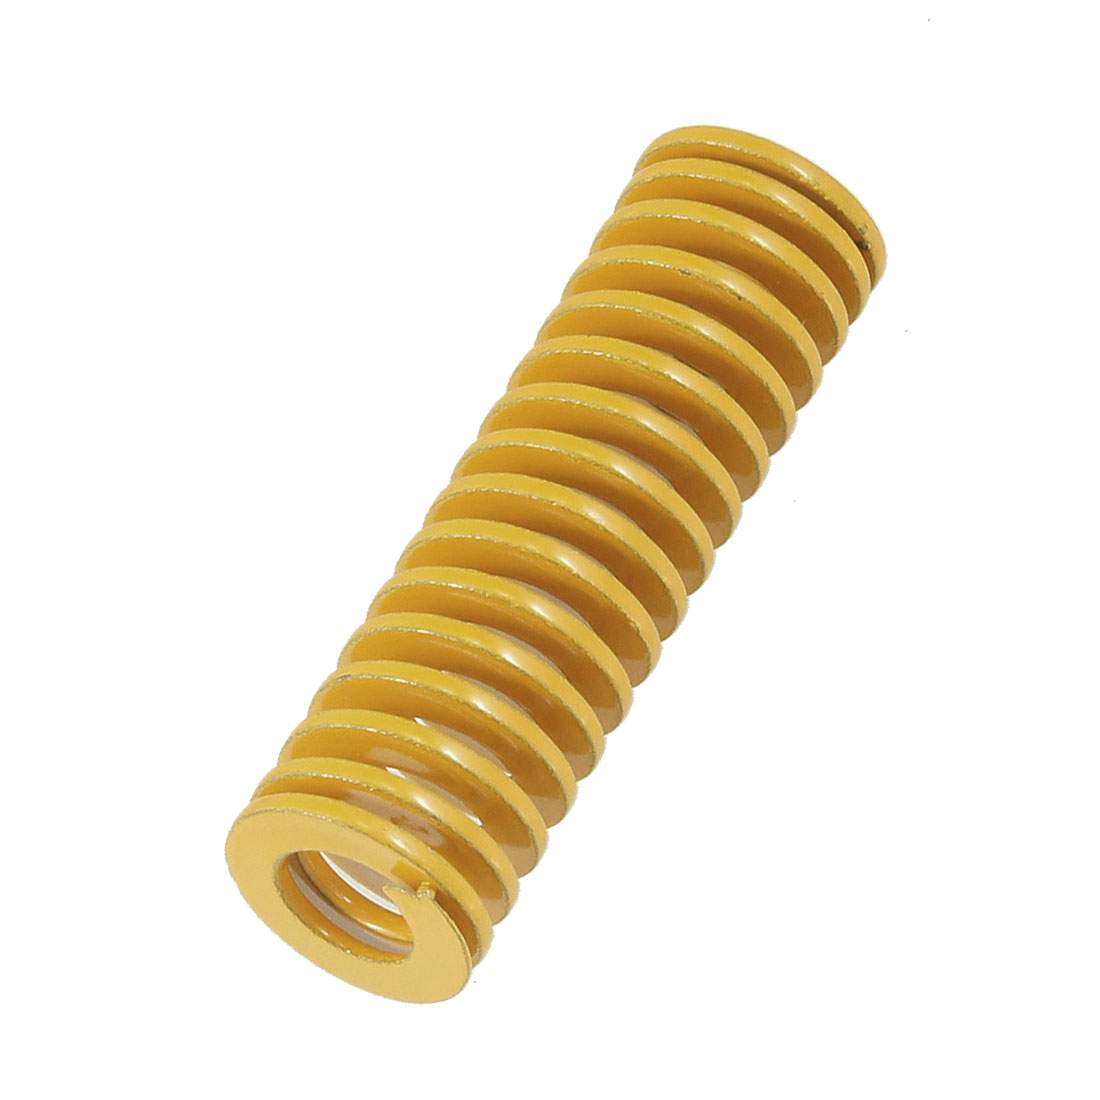 20mm x 10.5mm x 65mm Spiral Metal Stamping Compression Die Spring